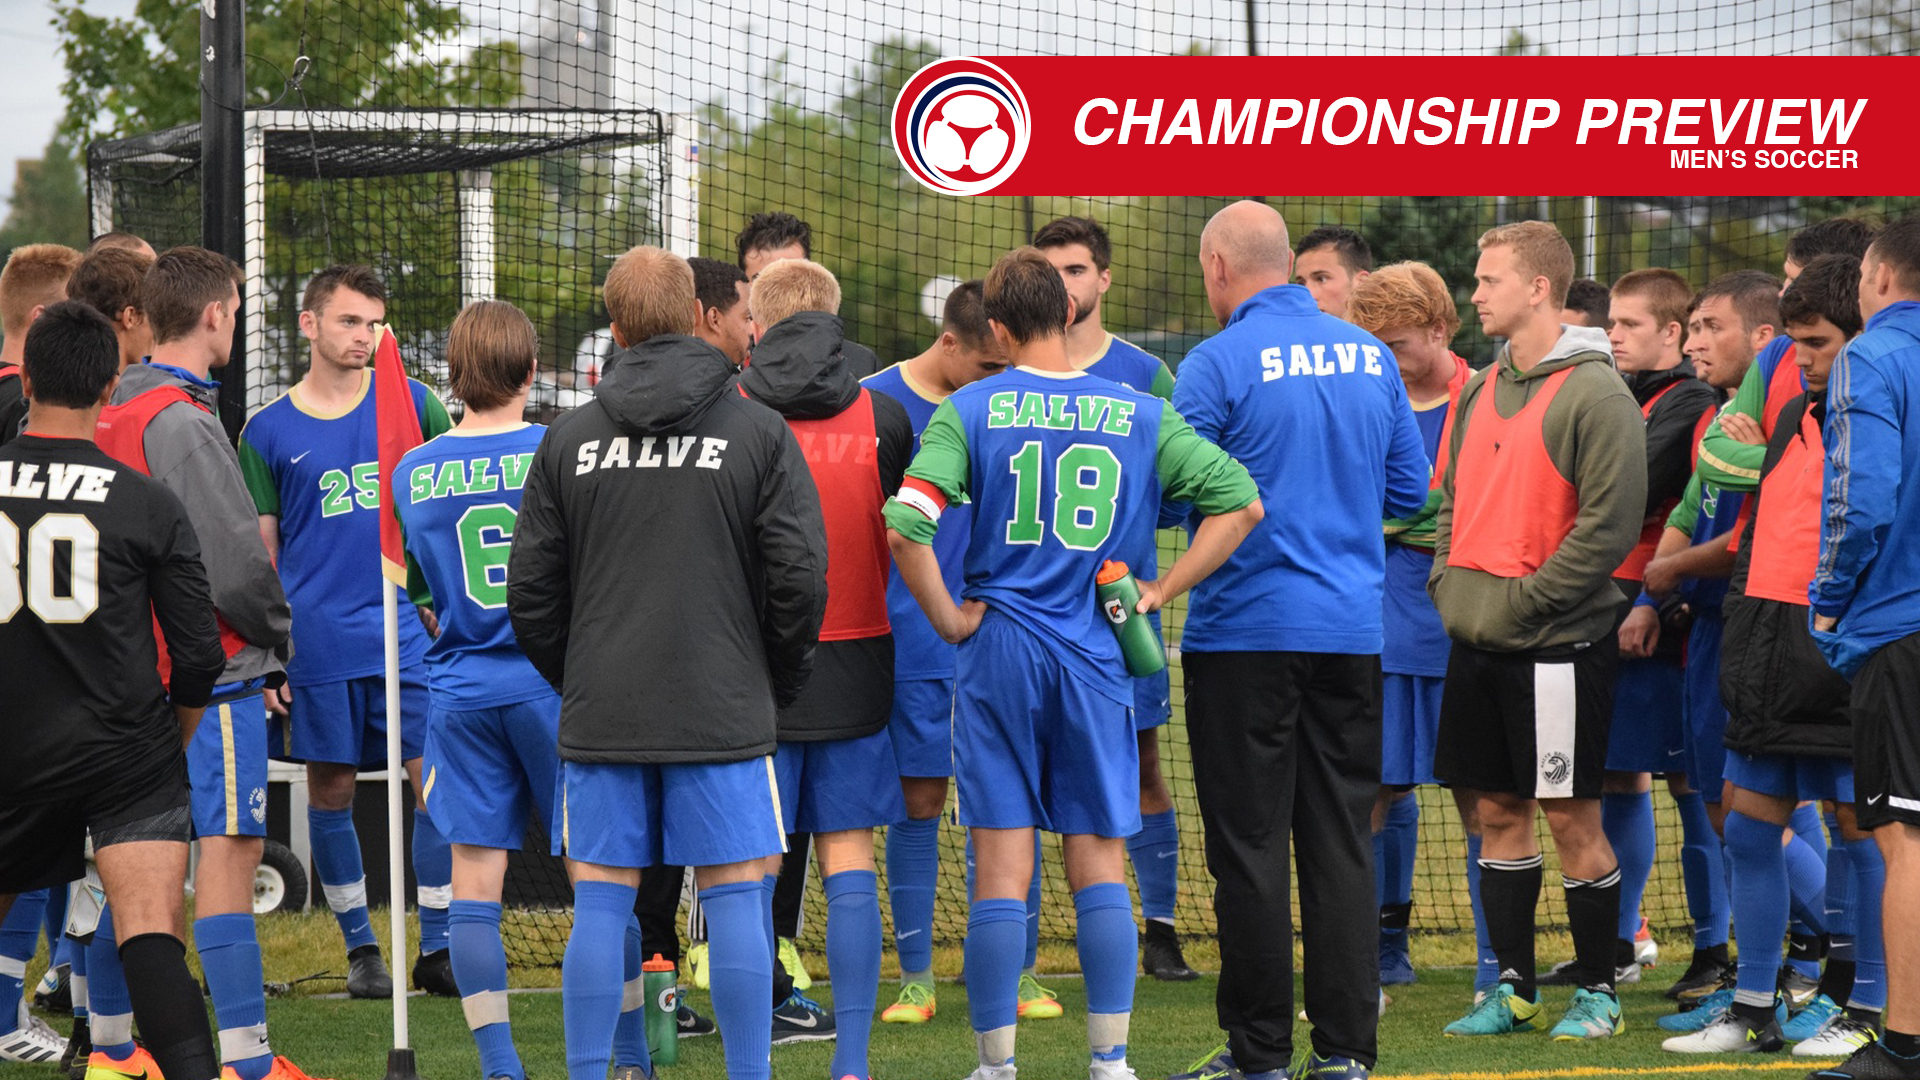 Salve Regina men's soccer has earned the No. 5 seed in the 2017 Commonwealth Coast Conference (CCC) Championships.